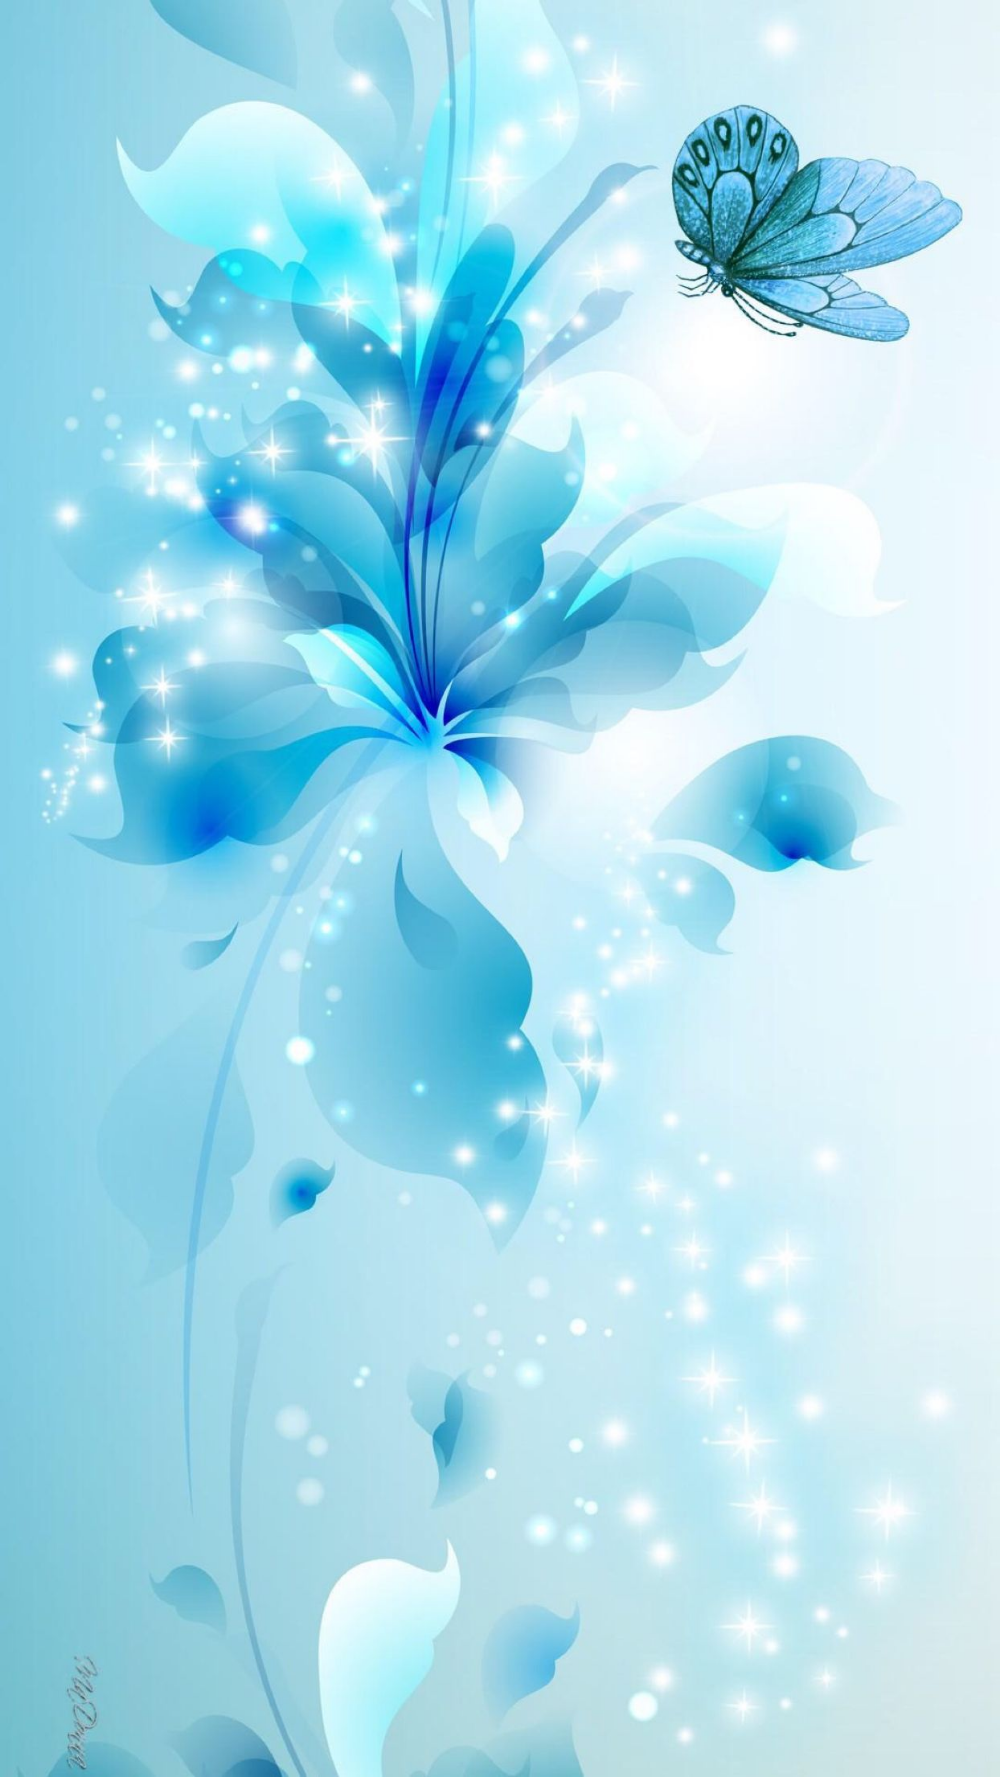 Blue Turquoise Light Abstract Butterfly Flowers Apple Wallpaper Iphone Clean Beauty In 2020 Blue Flower Wallpaper Butterfly Wallpaper Best Flower Wallpaper